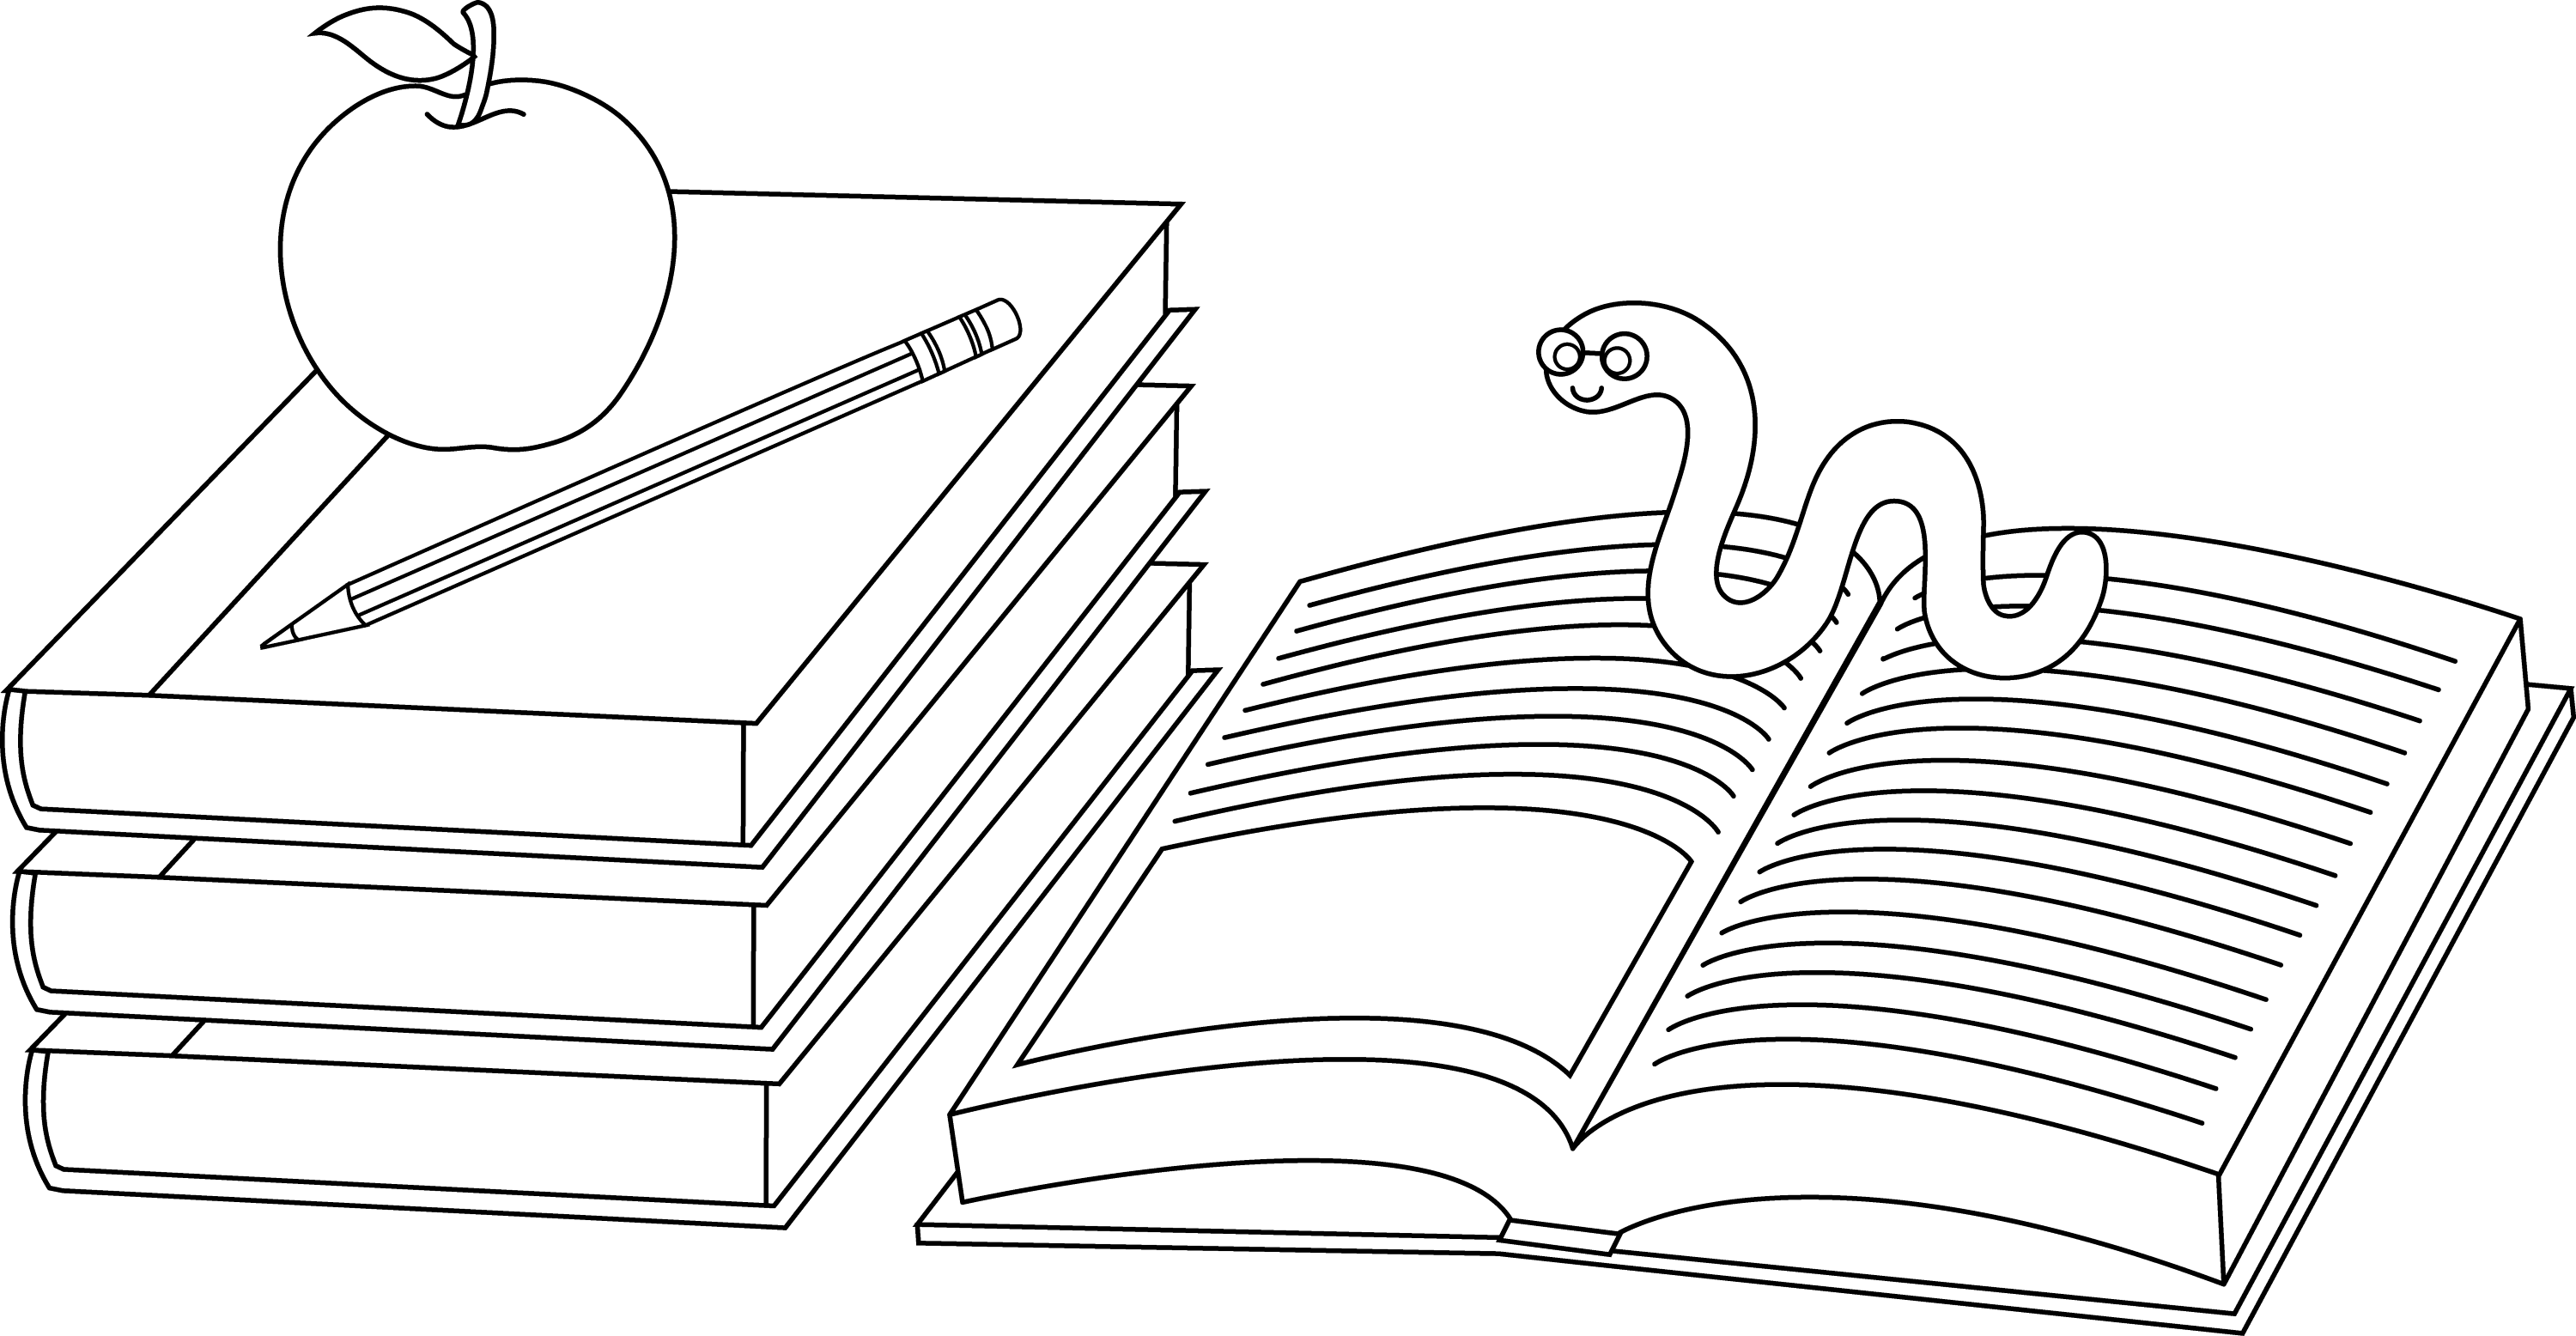 Colorable School Books And Bookworm Free Clip Art Coloring Page Book